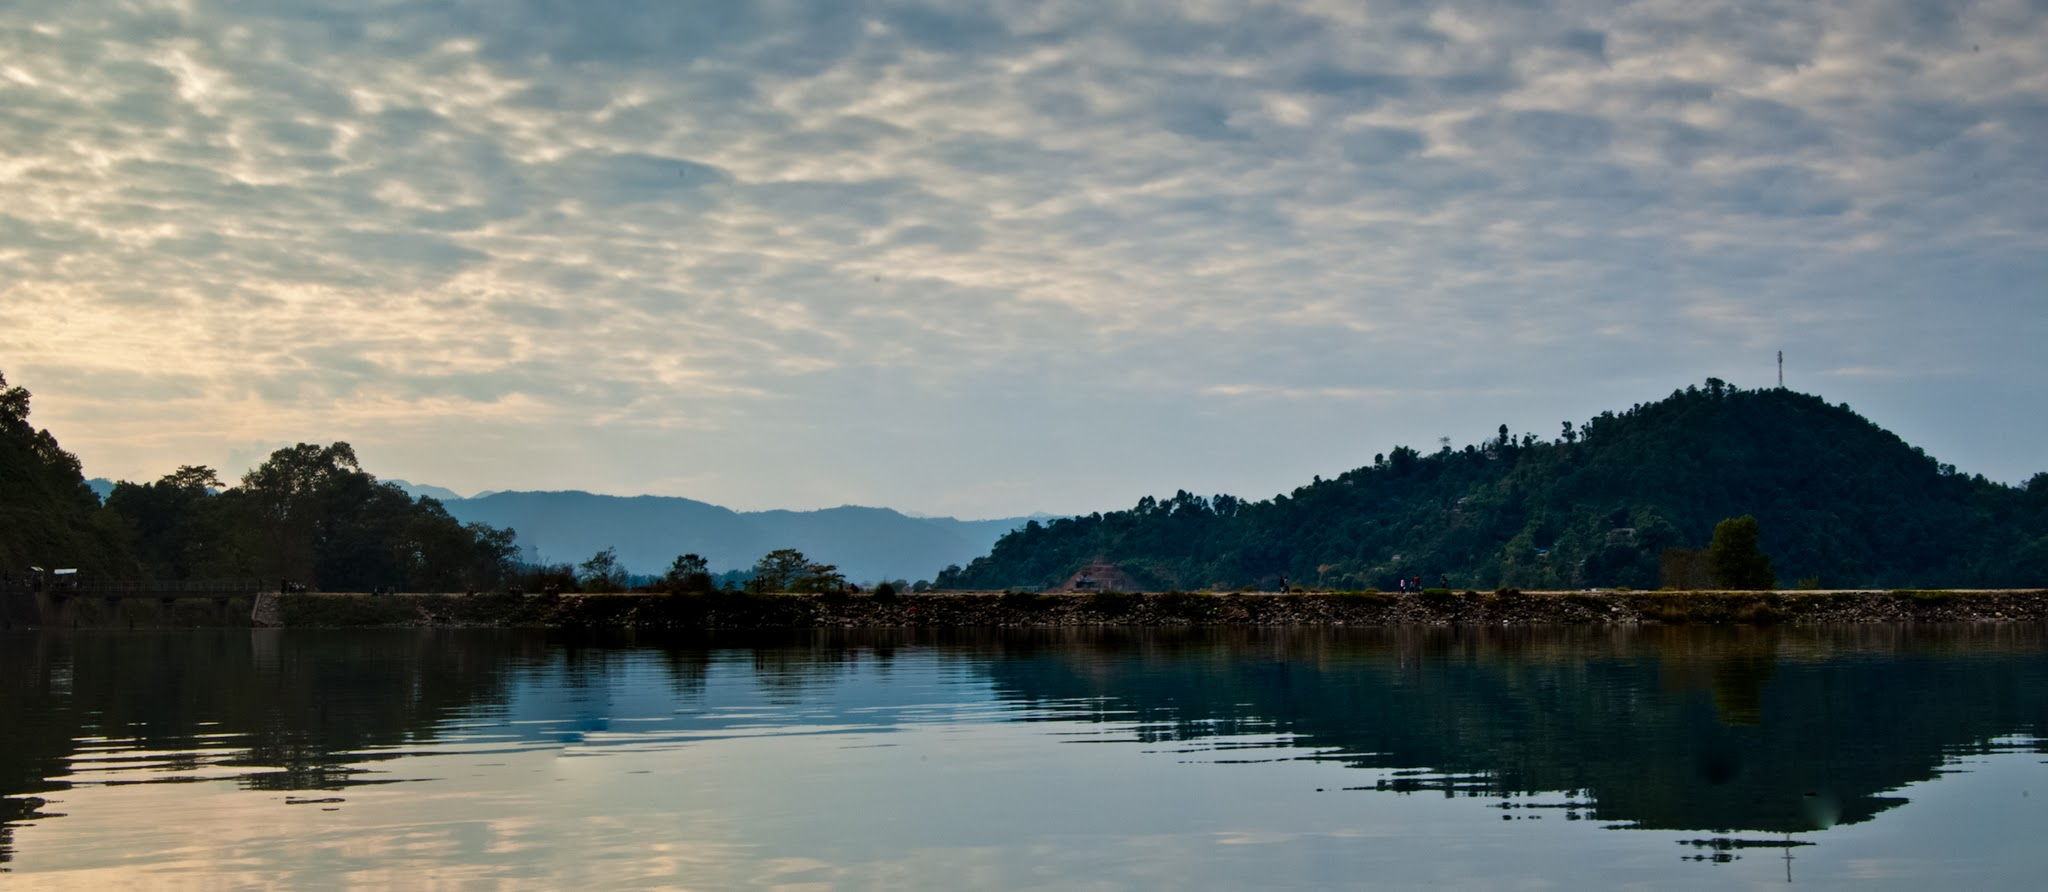 Photo: Begnas Lake  A panorama of the beautiful Begnas Lake in Pokhara. Submitted for #MirrorMonday curated by +Gemma Costa and +Elizabeth Edwards .